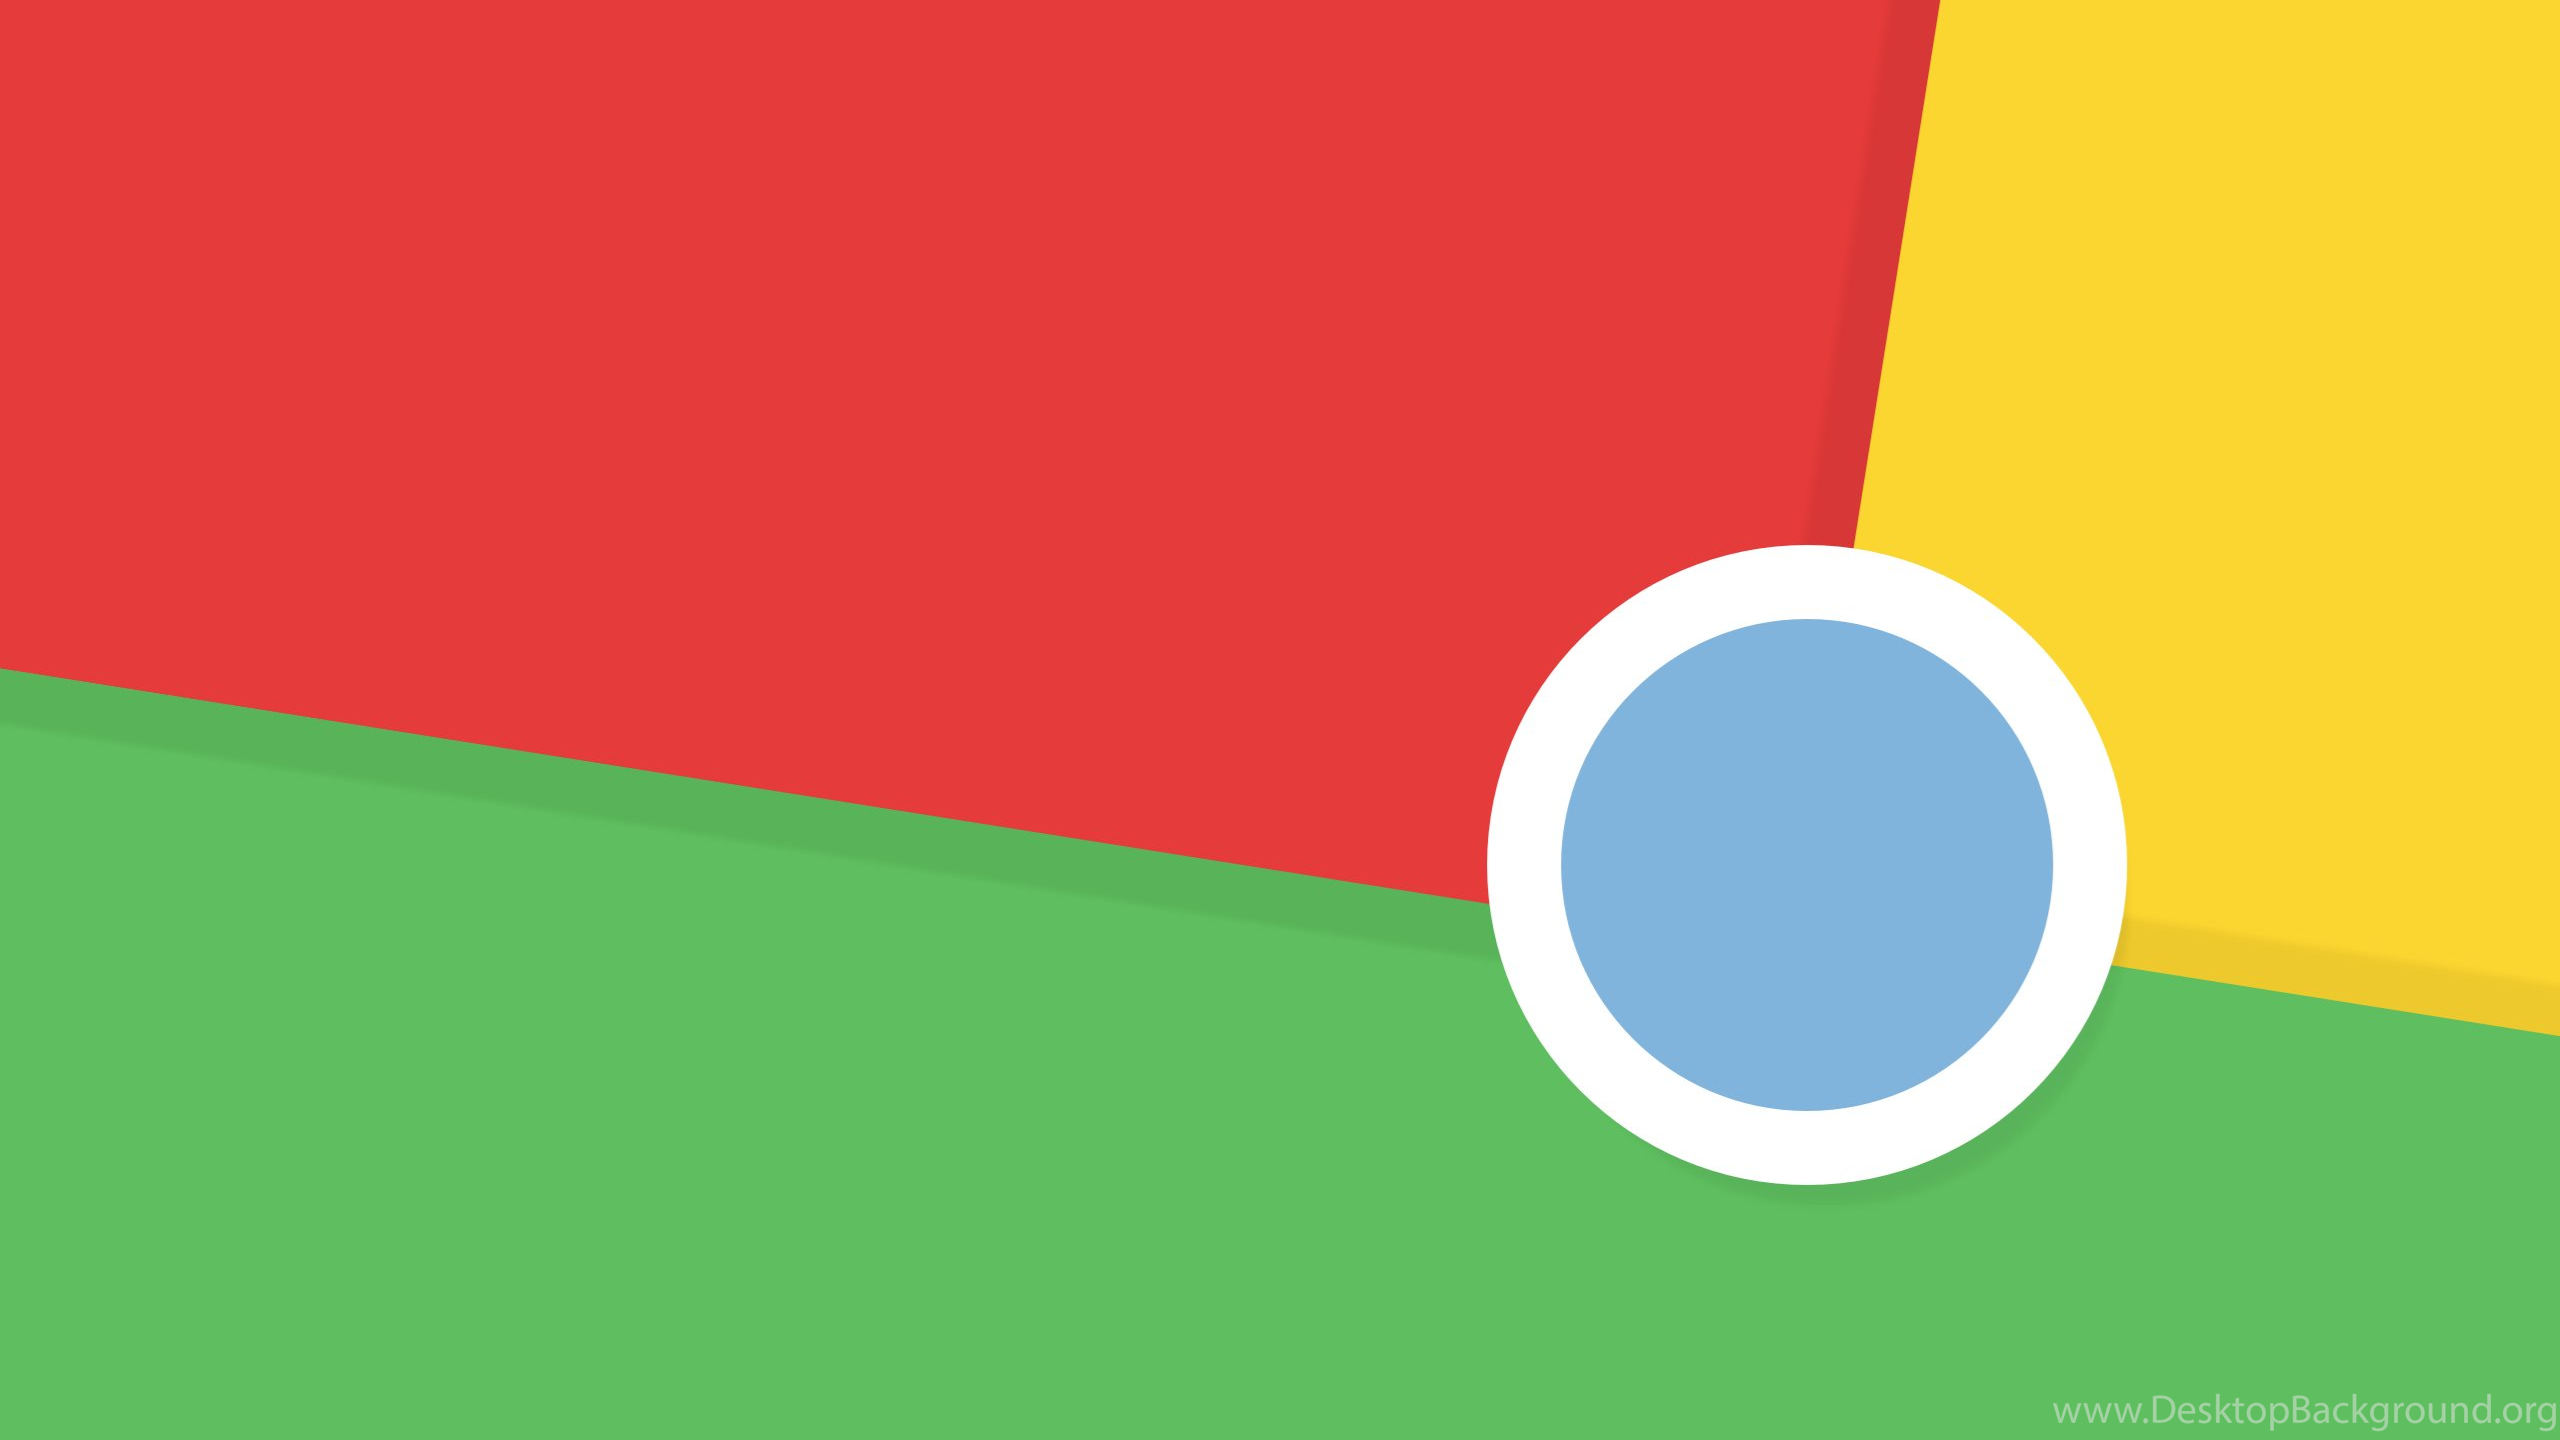 Google Chrome Live Images, HD Wallpapers - BsnSCB Graphics